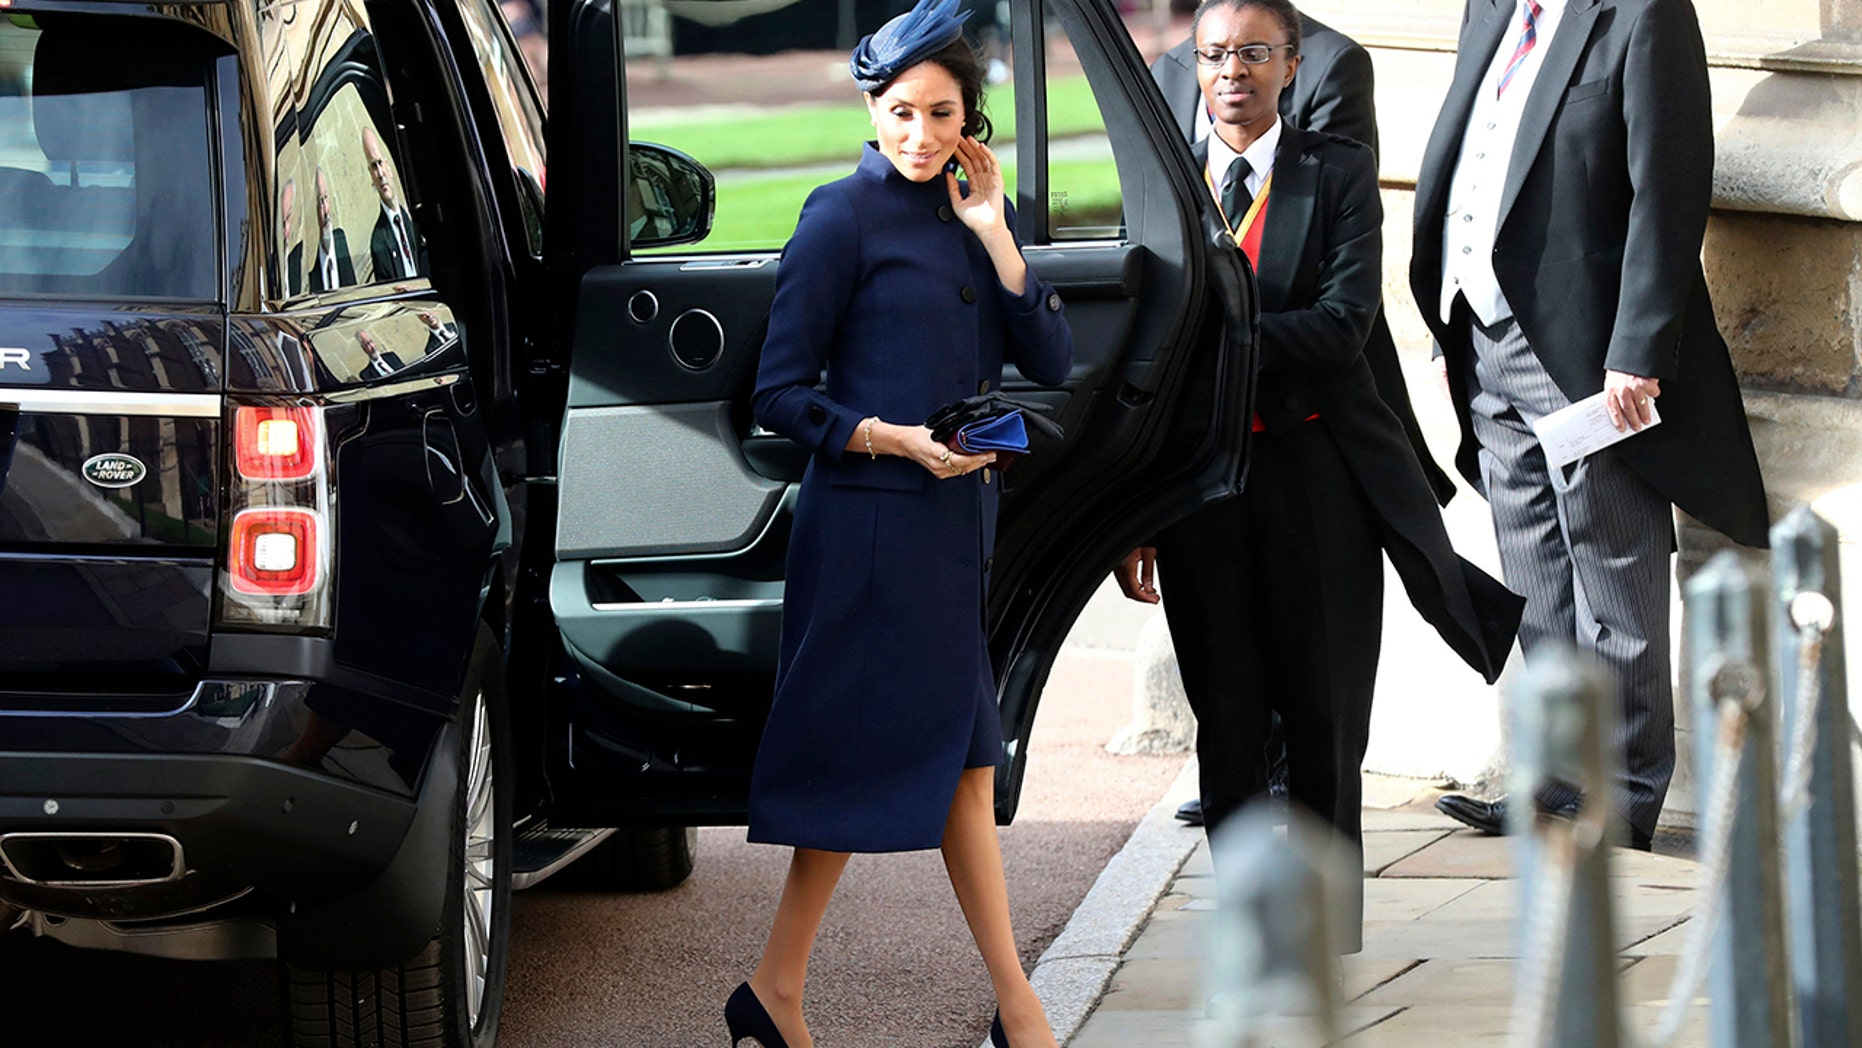 Meghan, Duchess of Sussex arrives ahead of the wedding of Princess Eugenie of York and Jack Brooksbank at St George's Chapel, Windsor Castle, near London, England, Friday Oct. 12, 2018. (Gareth Fuller/Pool via AP)